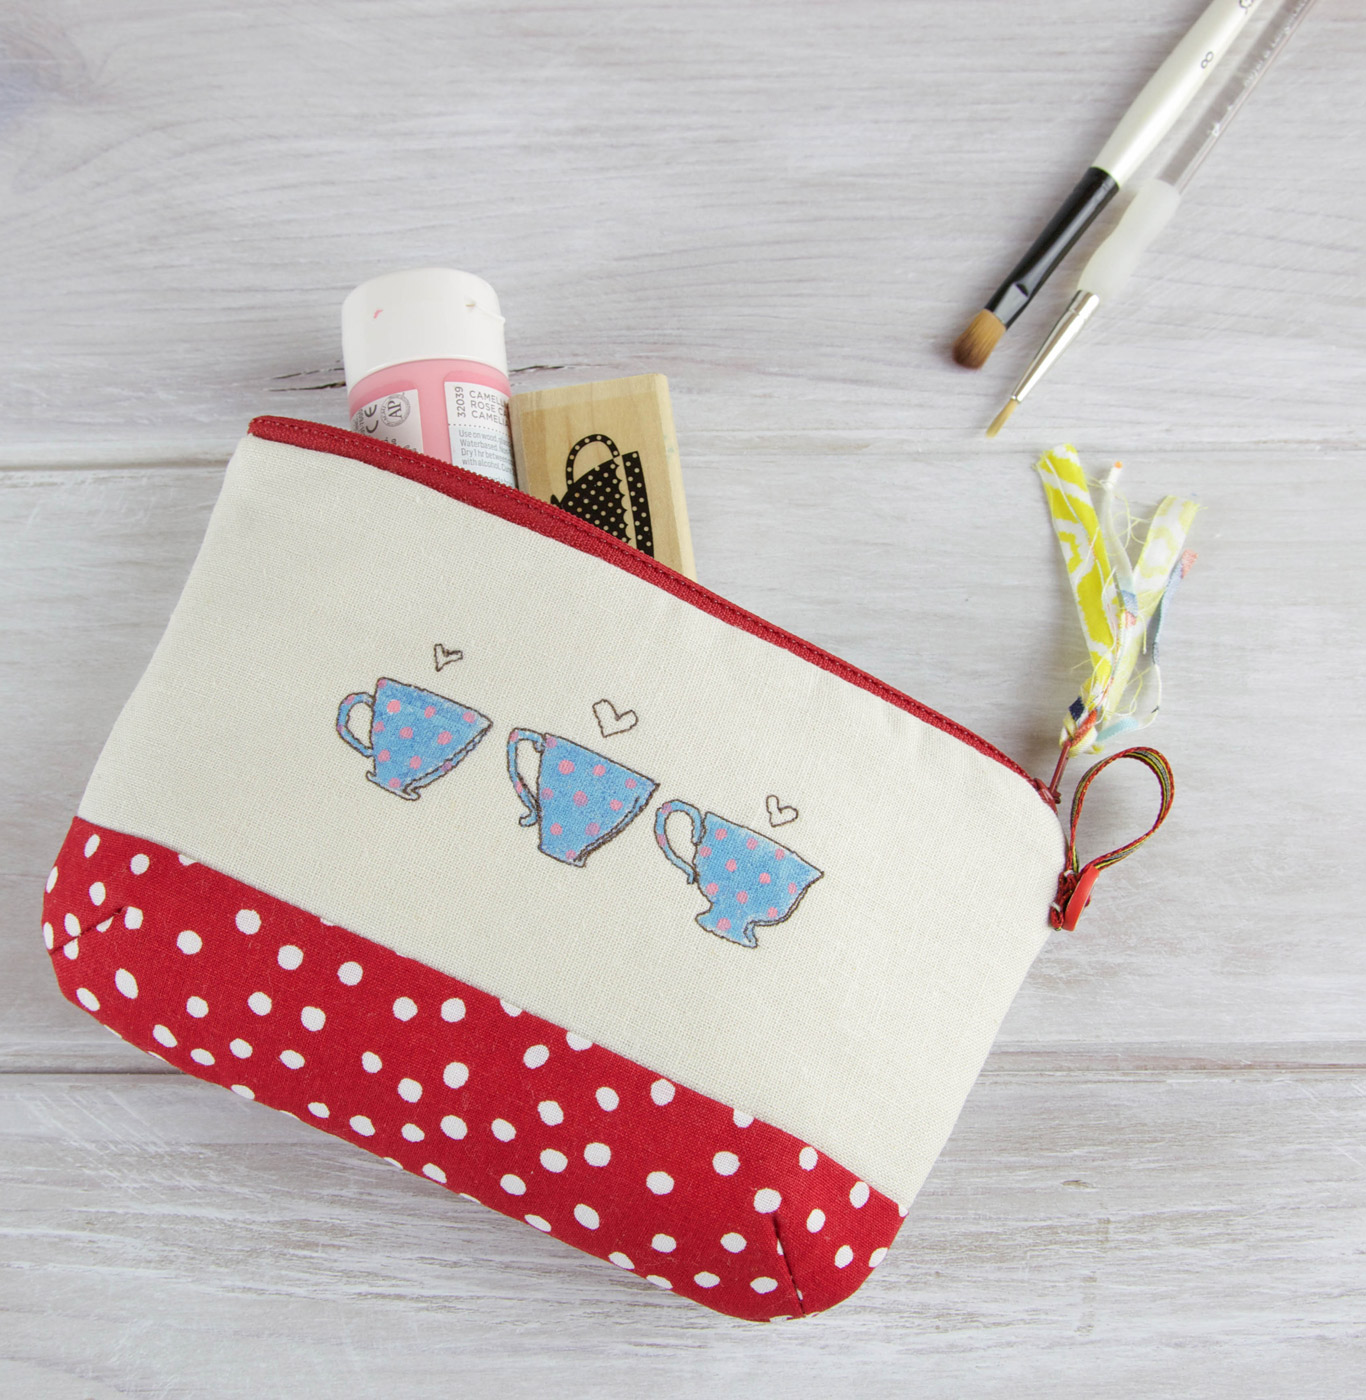 How to make a zippered Pouch. DIY Photo Tutorial.